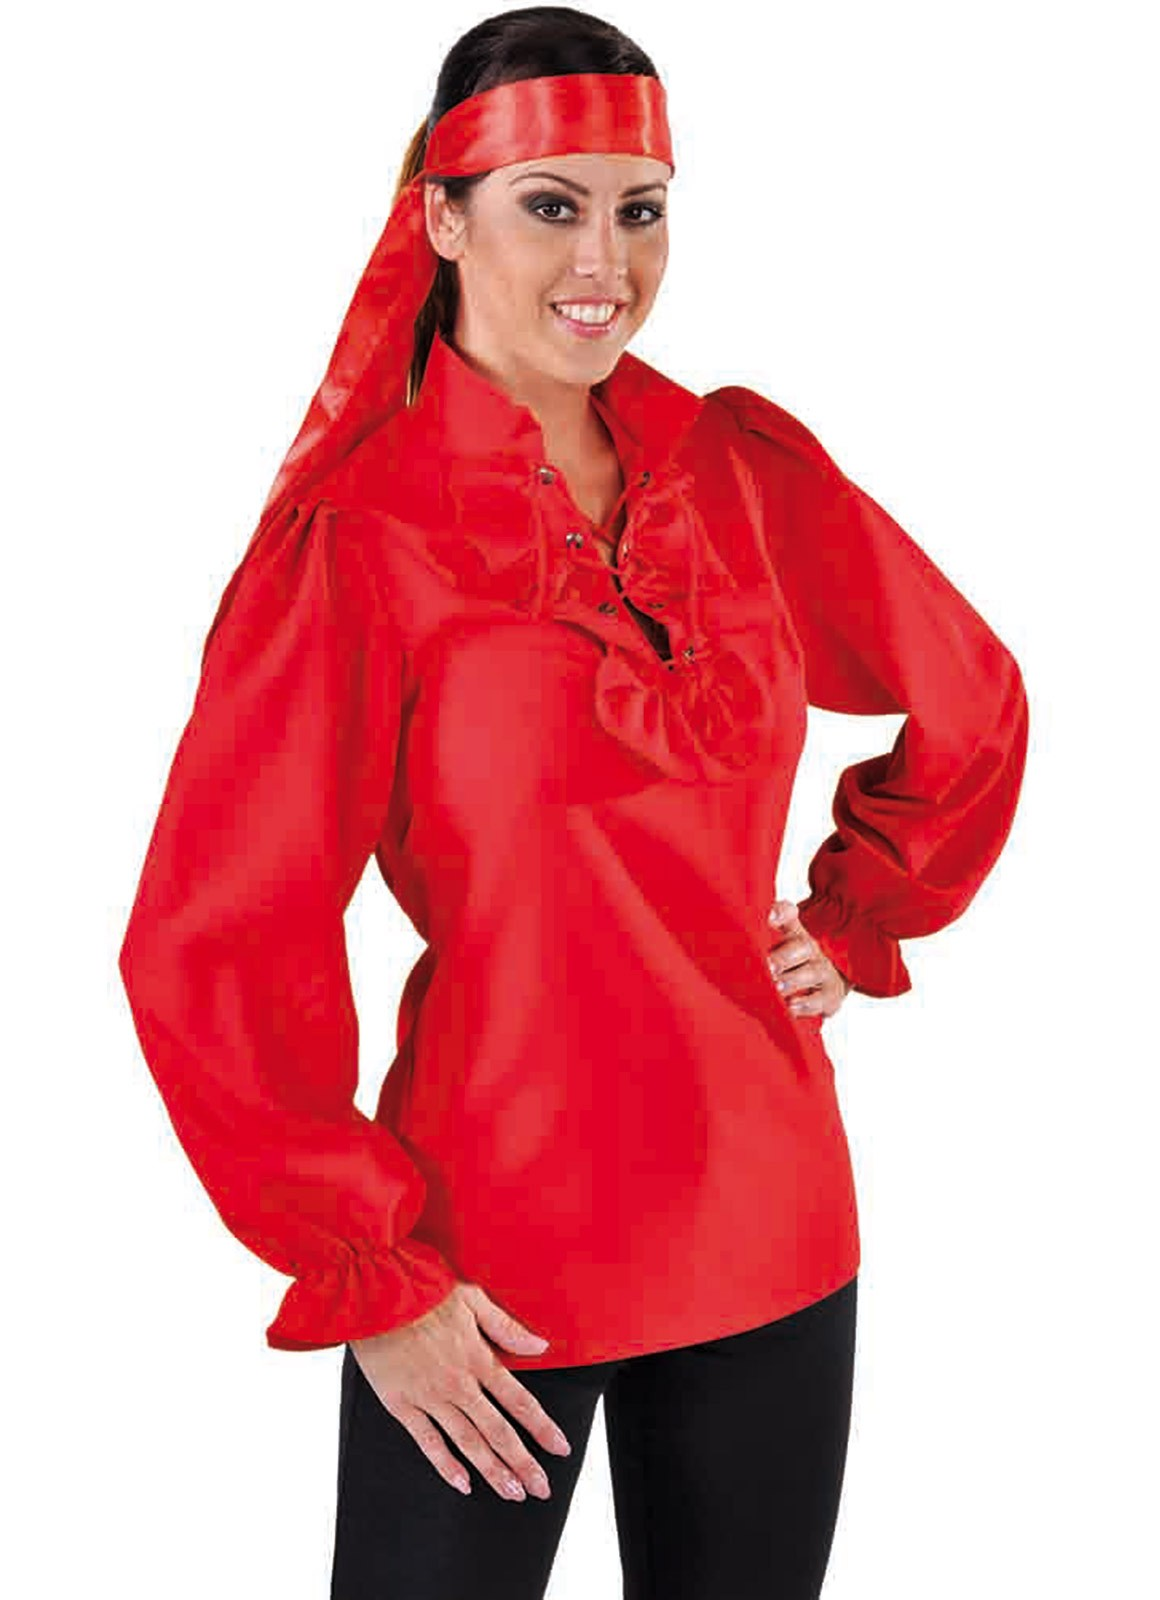 Xdcboe Le Cotillon Chemise Rouge Femme Pirate yvn0wO8Nm